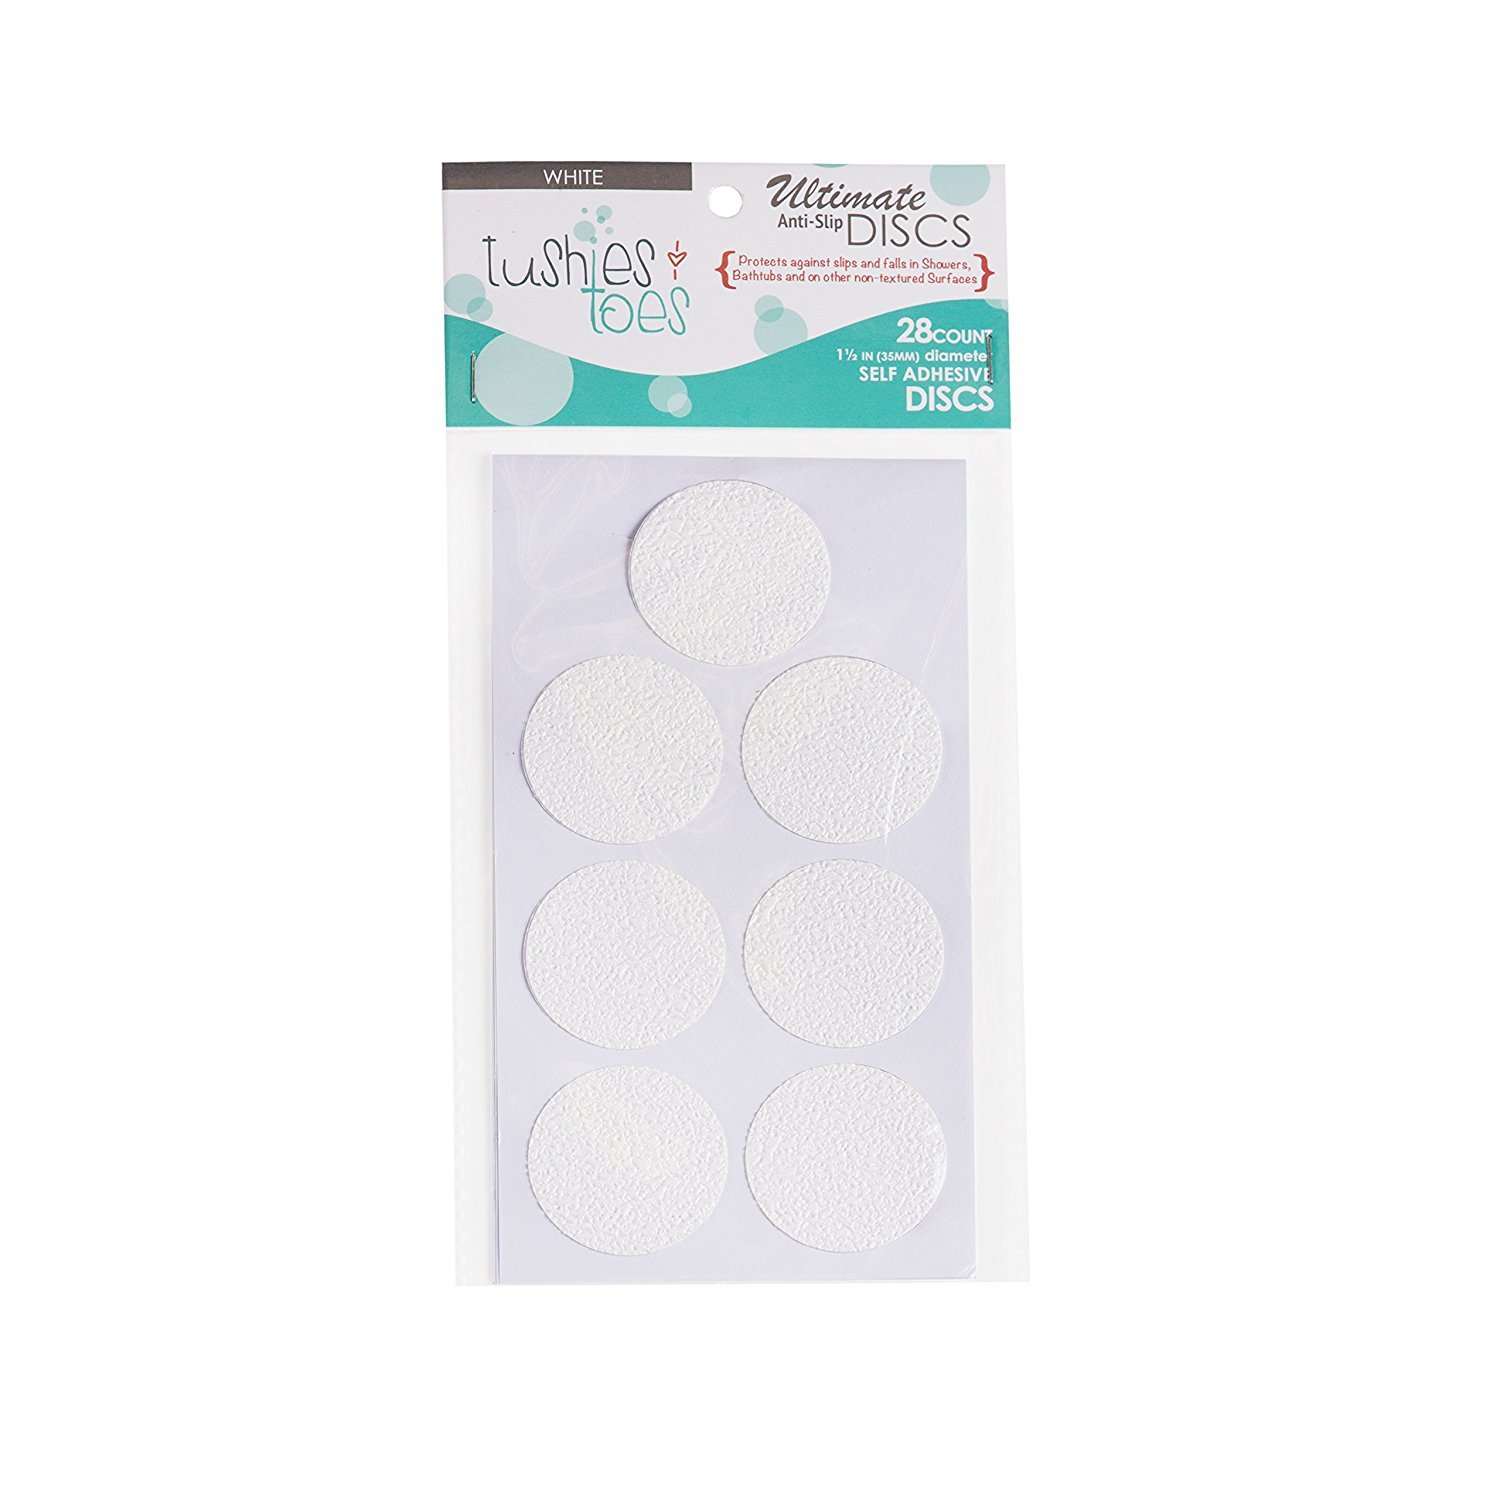 Anti-slip Discs - Non Slip Stickers for Tubs and Showers (White) SlipDoctors COMINHKPR73739